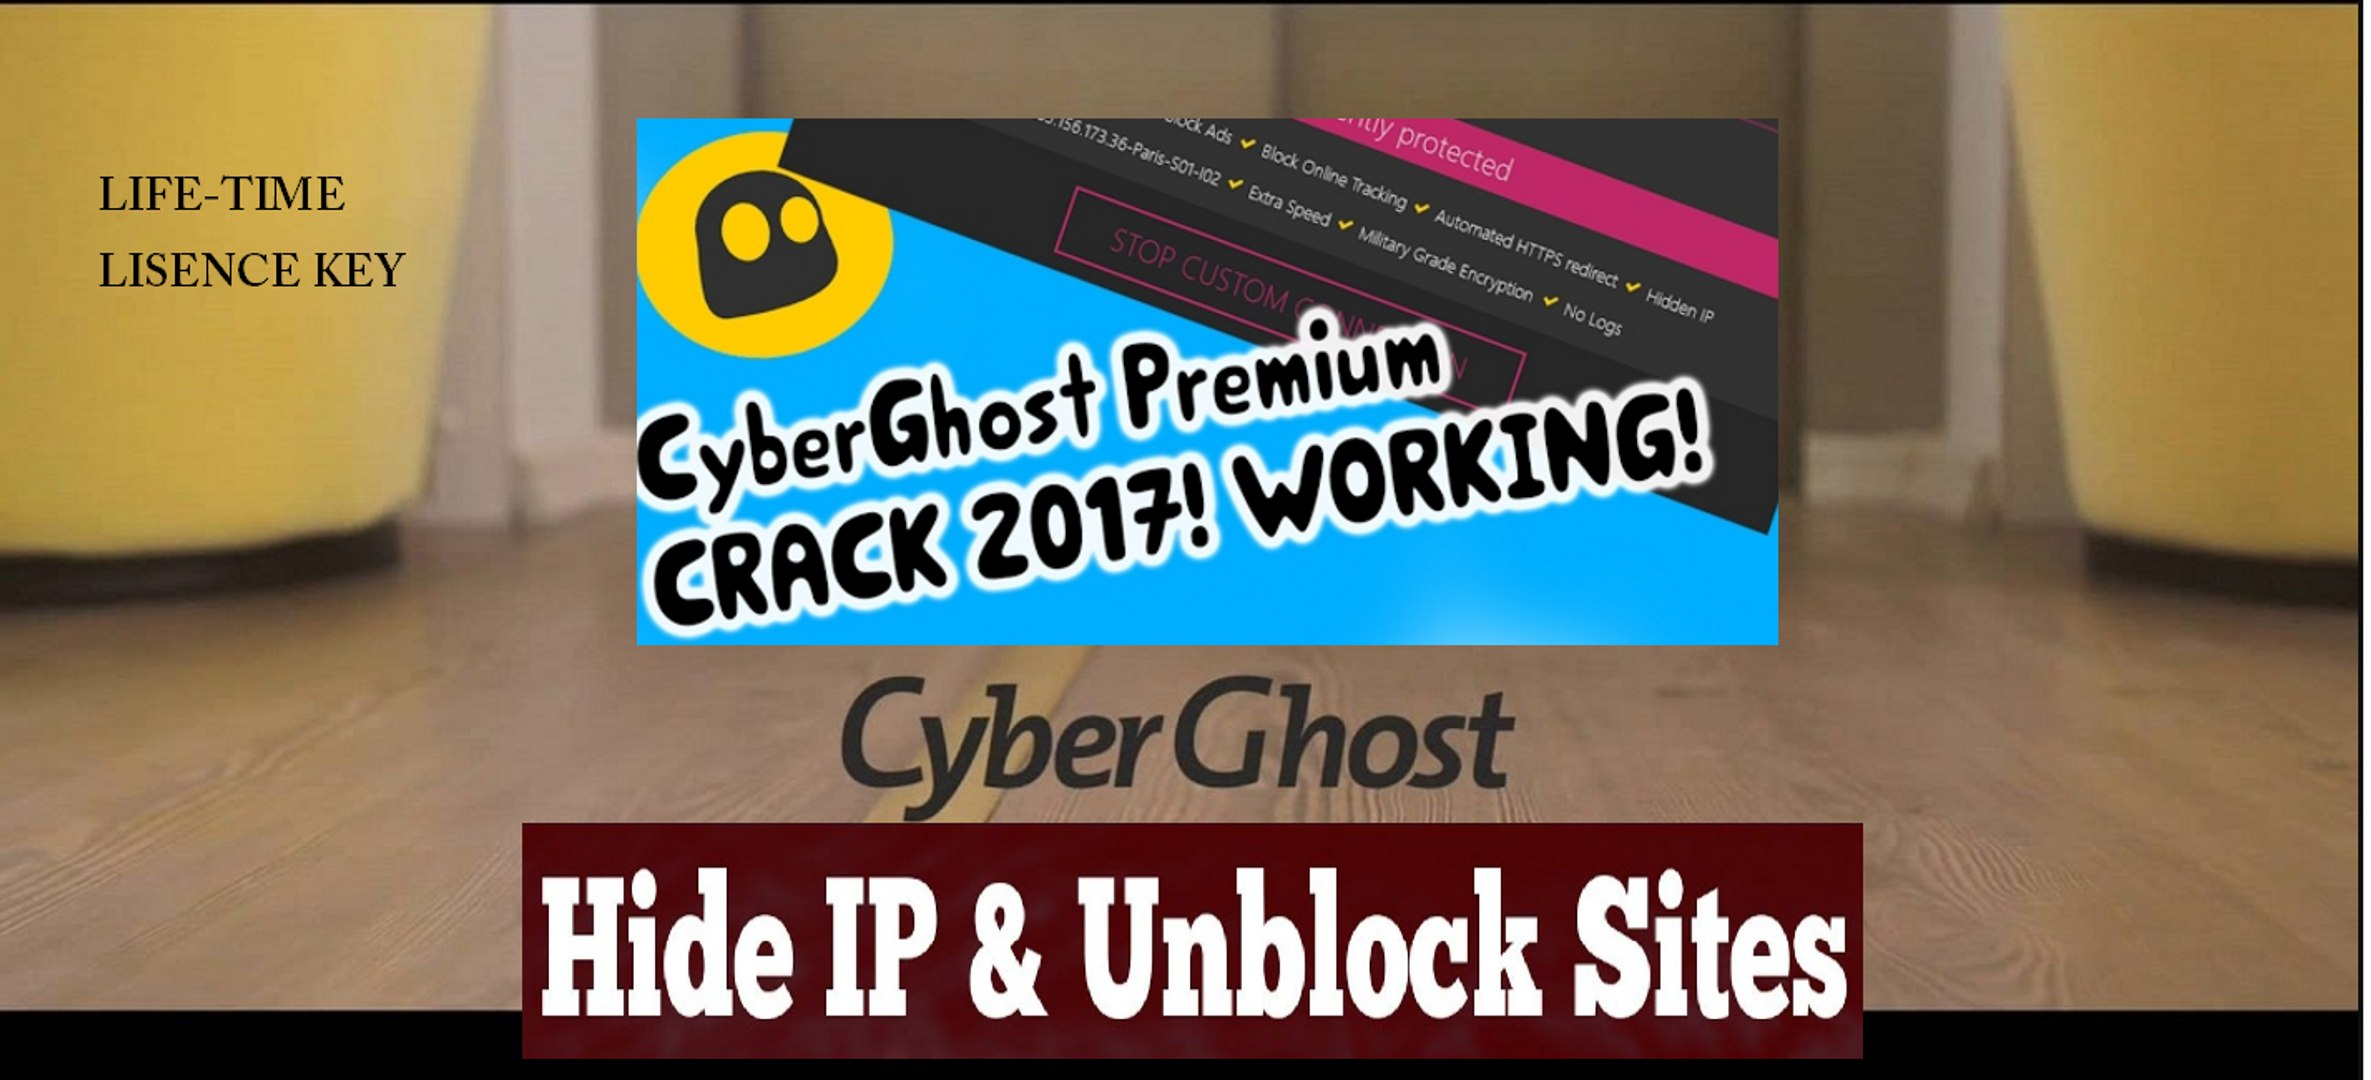 Cyberghost VPN Premium crack Pre-activated 2017 Lifetime